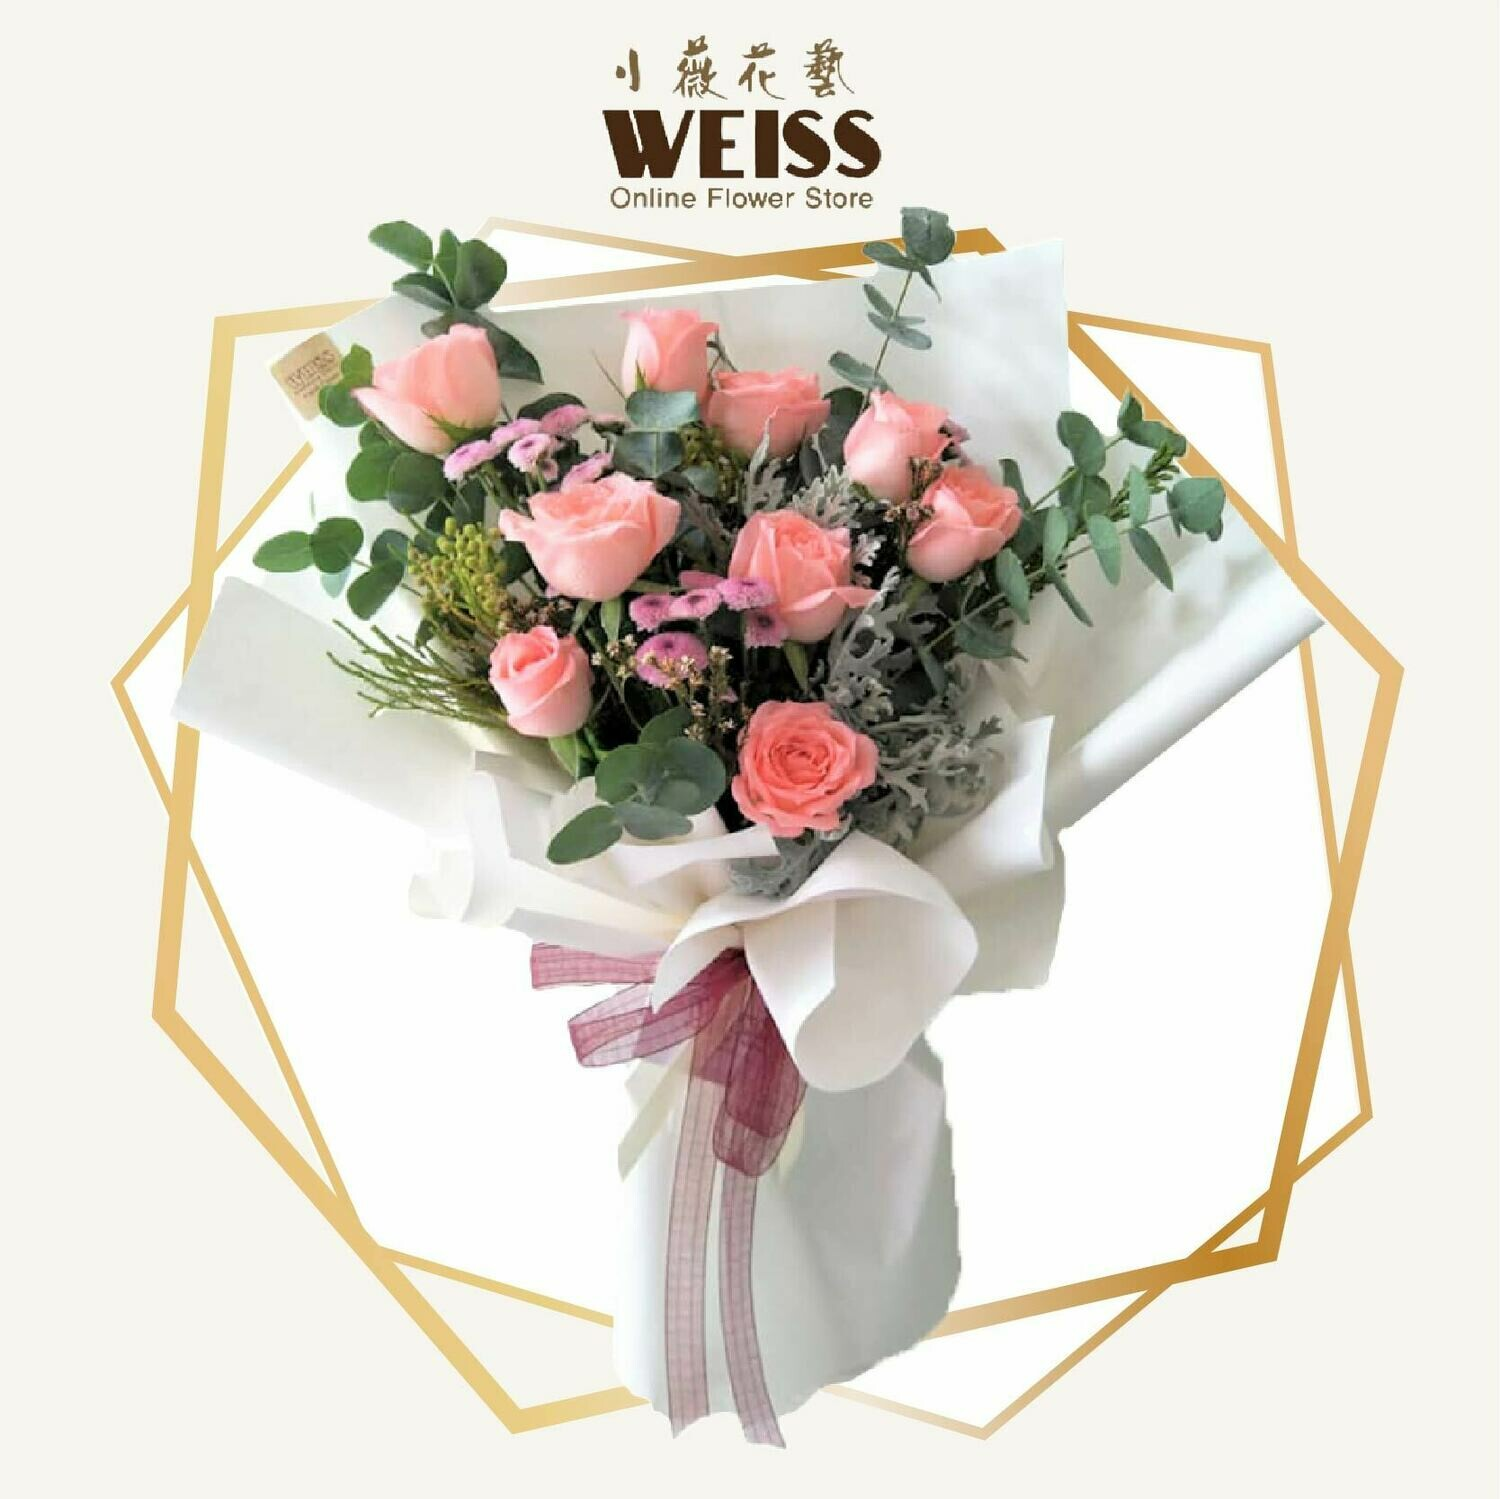 Weiss Florist 9stk pink roses (Free Shipping! Only deliver in JB)